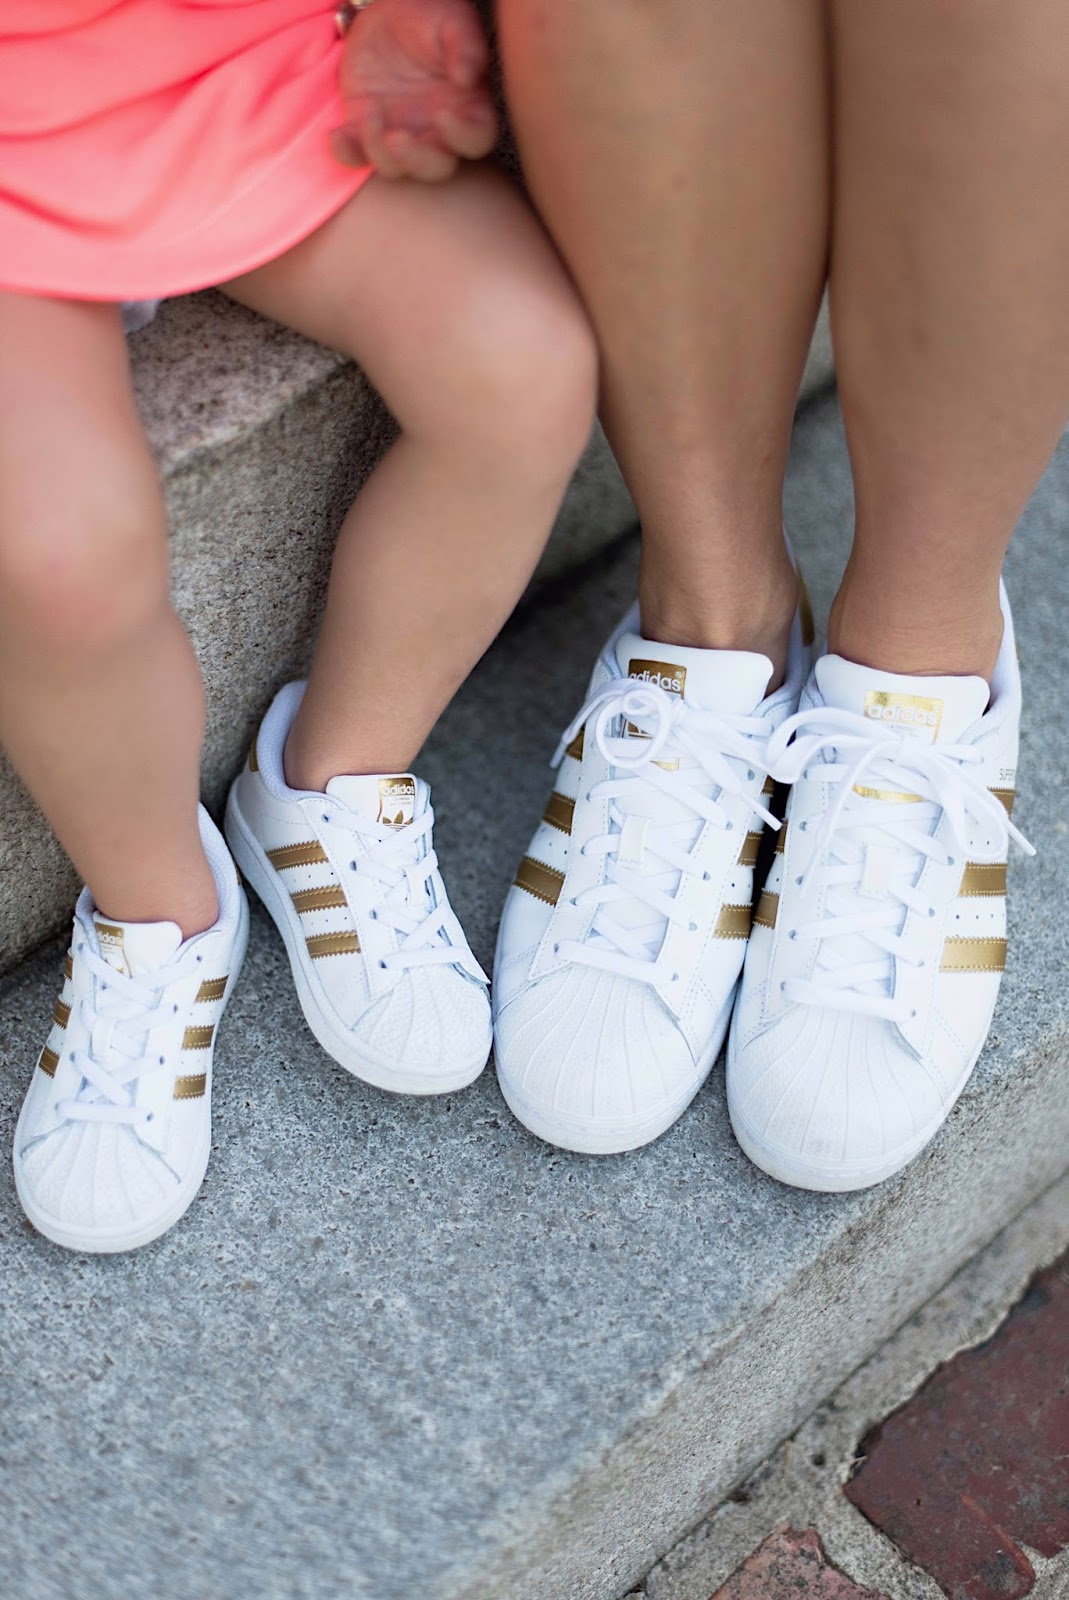 Mommy & Me Adidas Superstar Sneakers - Something Delightful Blog